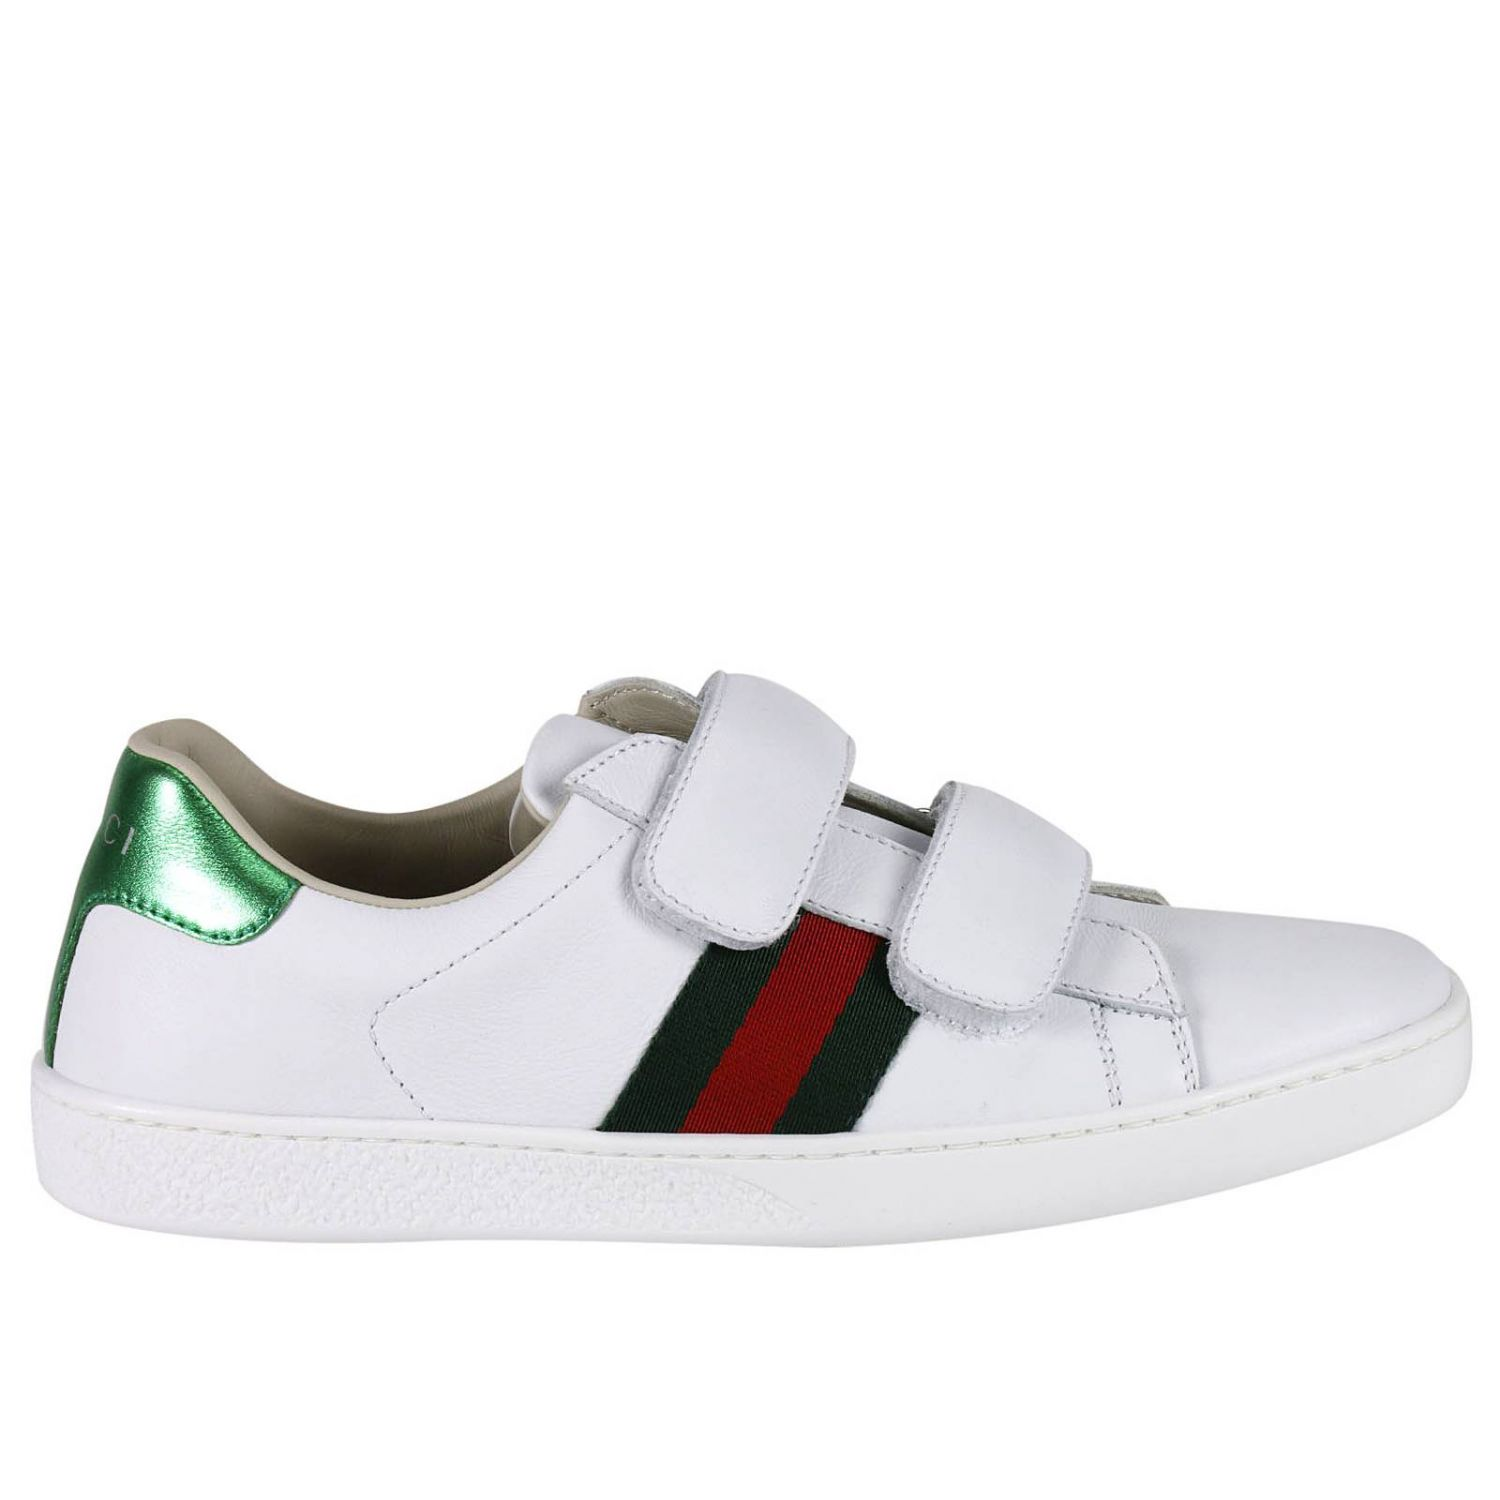 Shoes Gucci 455496 CPWP0 Giglio EN